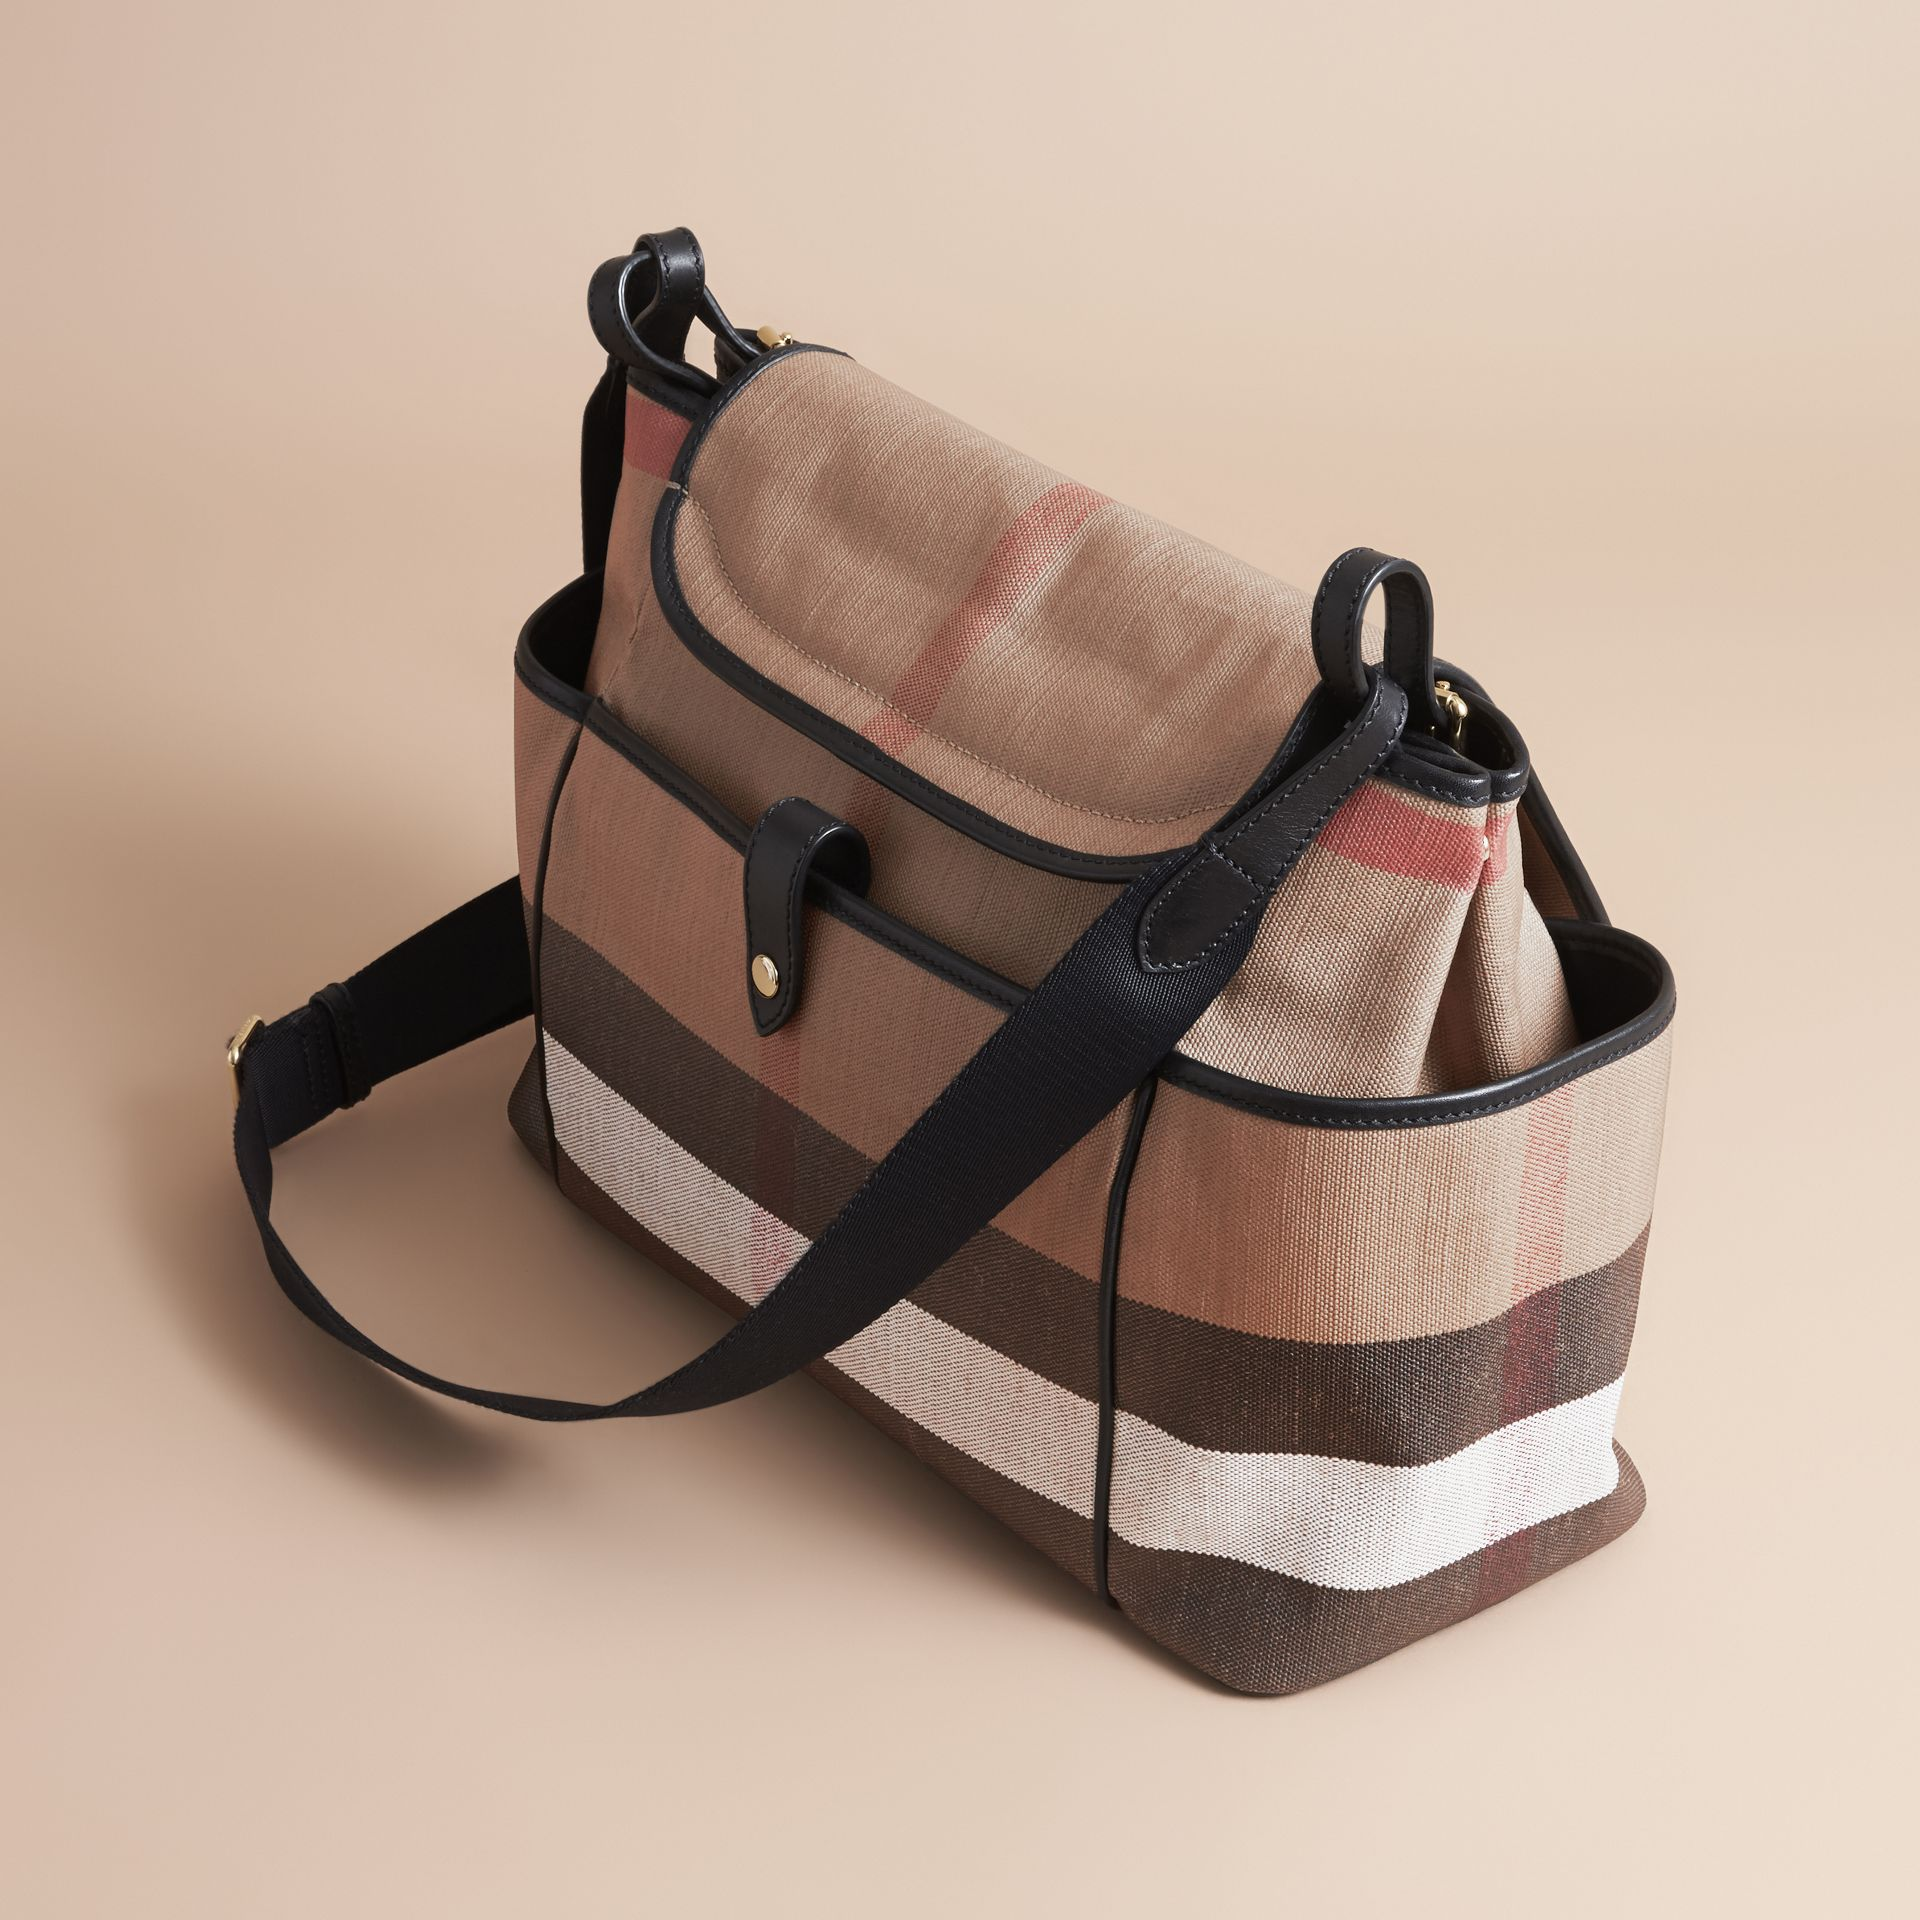 Canvas Check and Leather Baby Changing Shoulder Bag in Black - Children | Burberry Canada - gallery image 2